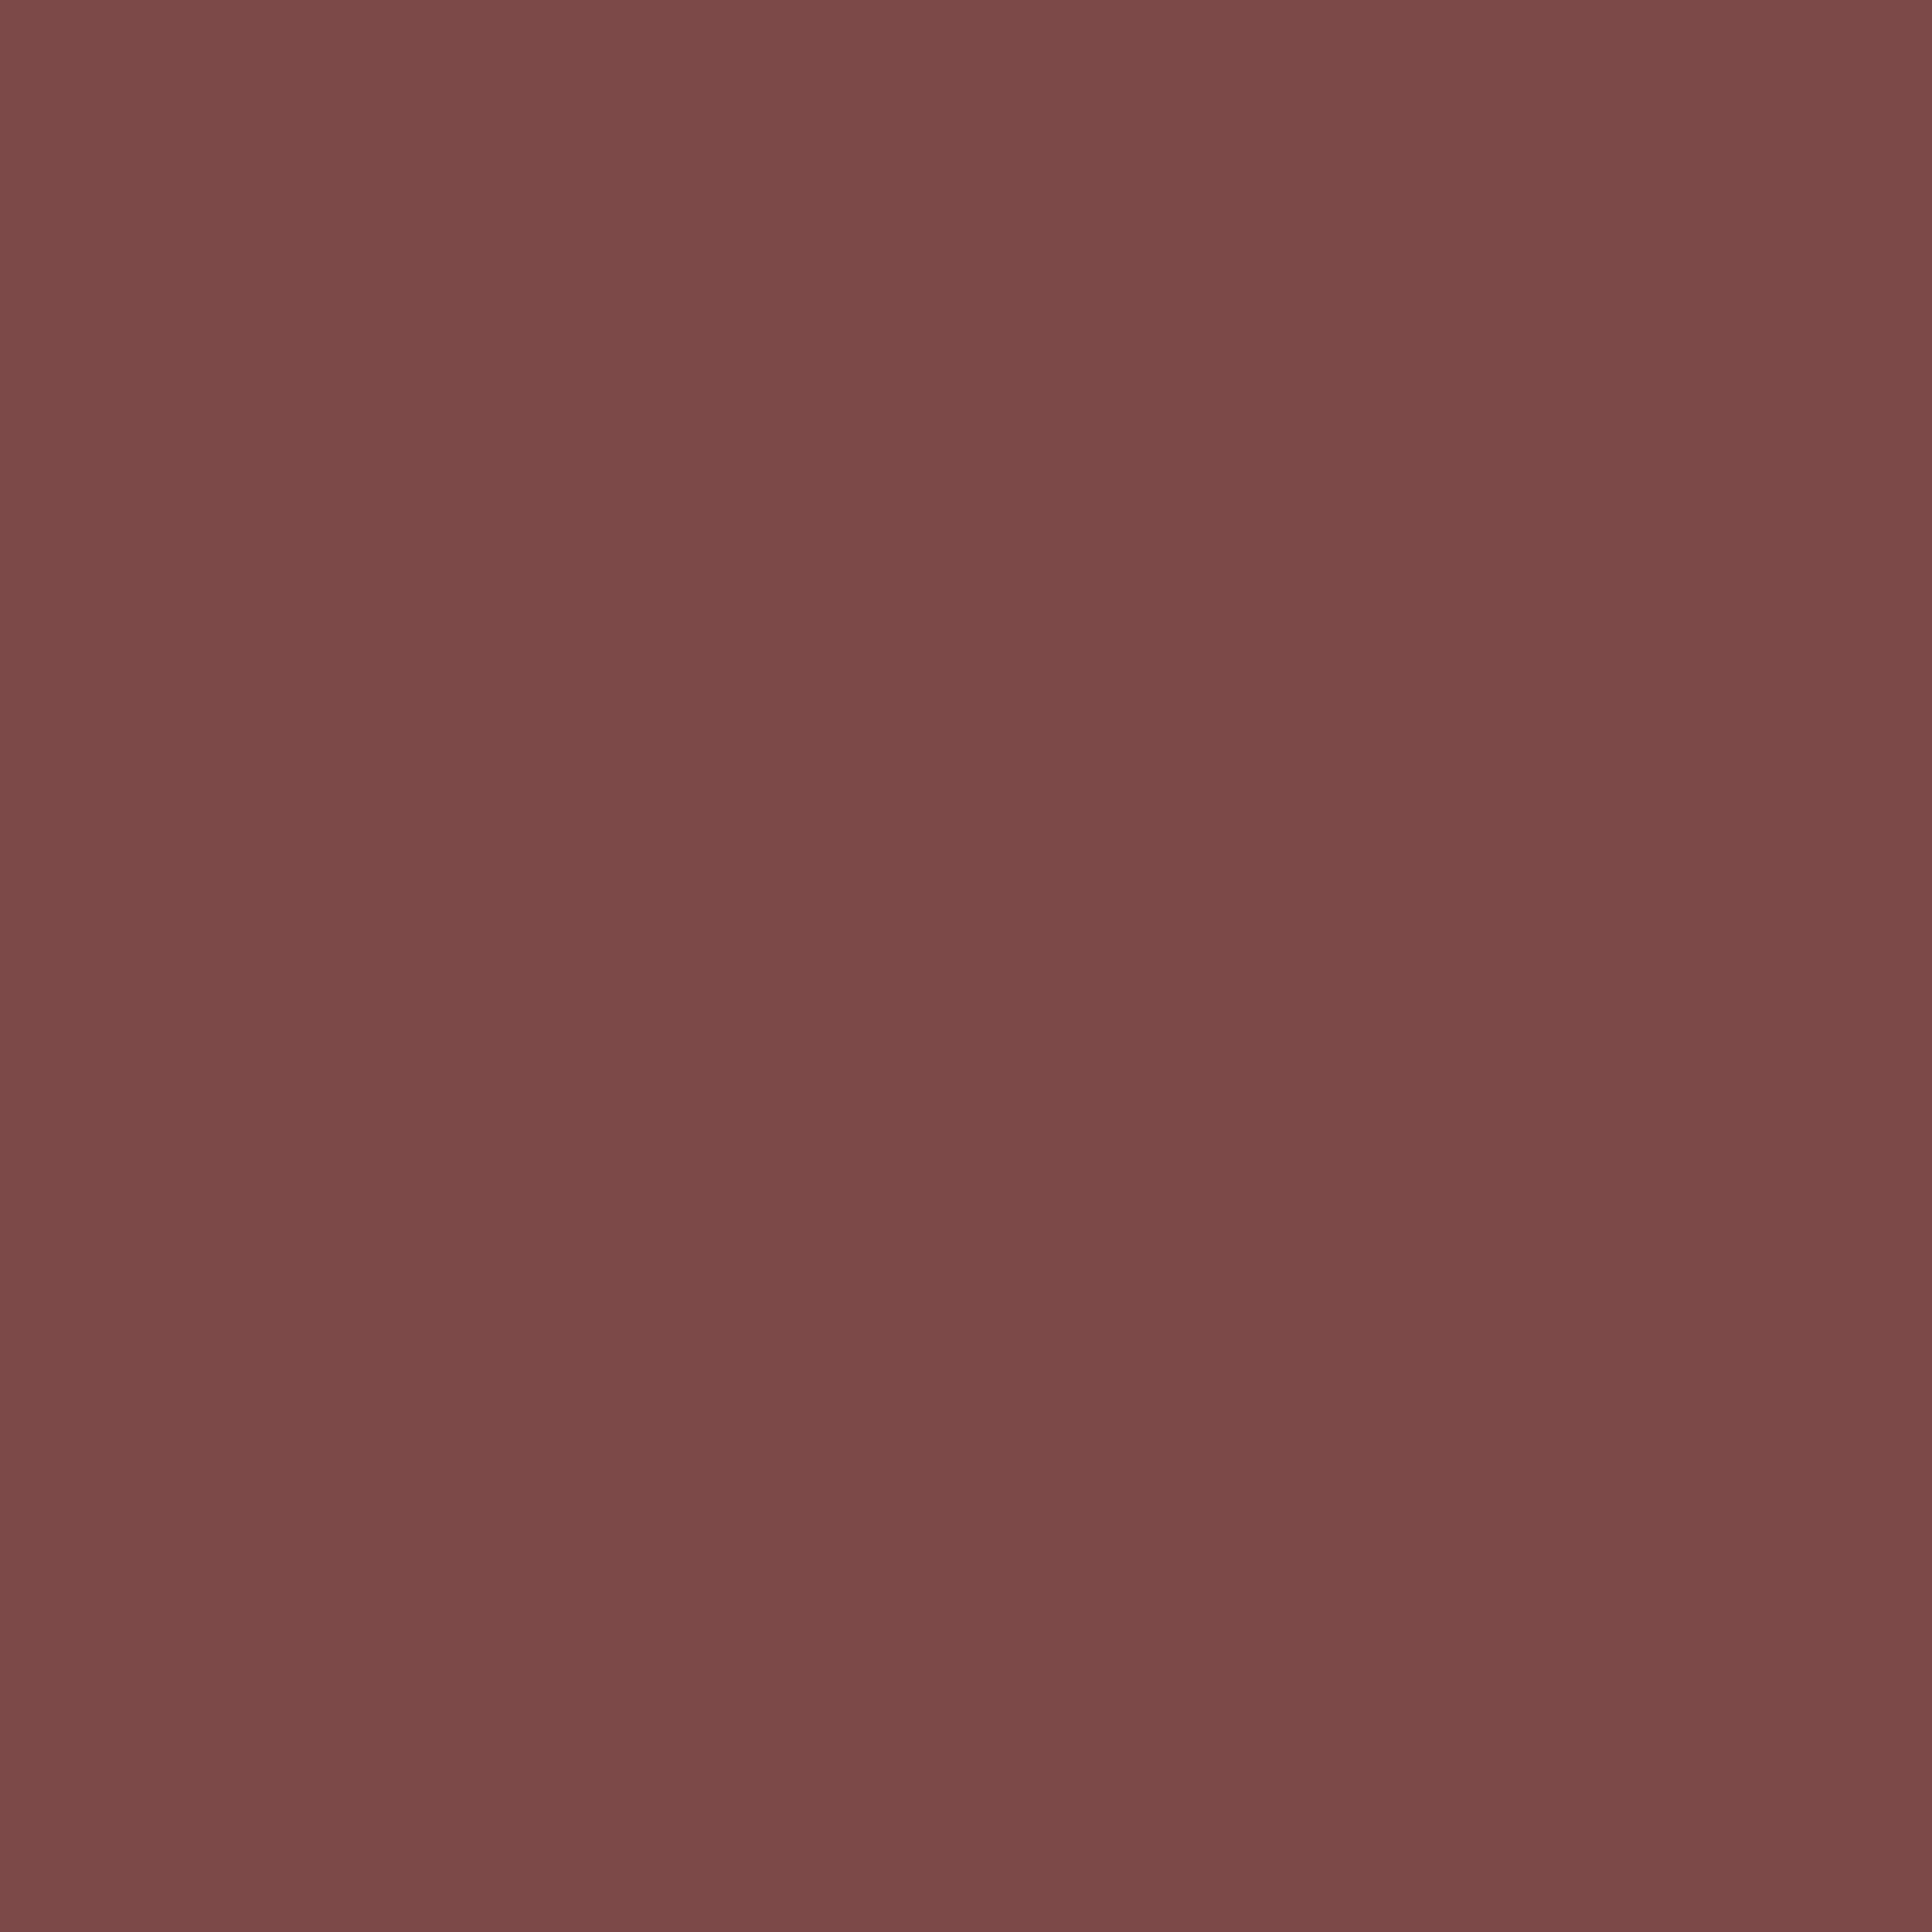 3600x3600 Tuscan Red Solid Color Background